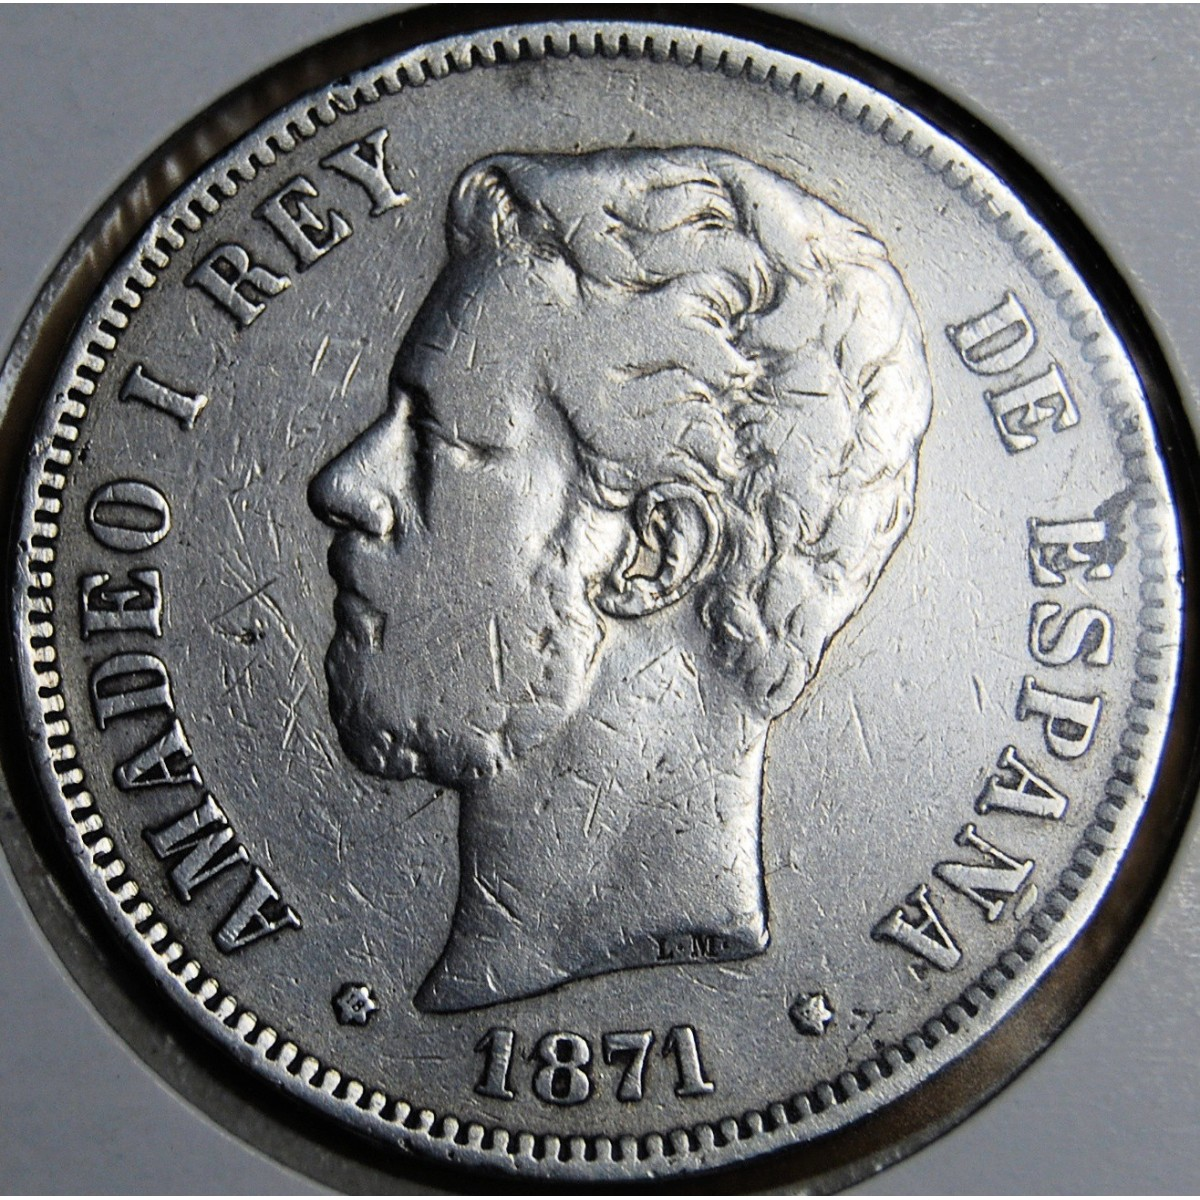 Moneda de 5 pesetas Amadeo I, 1871.